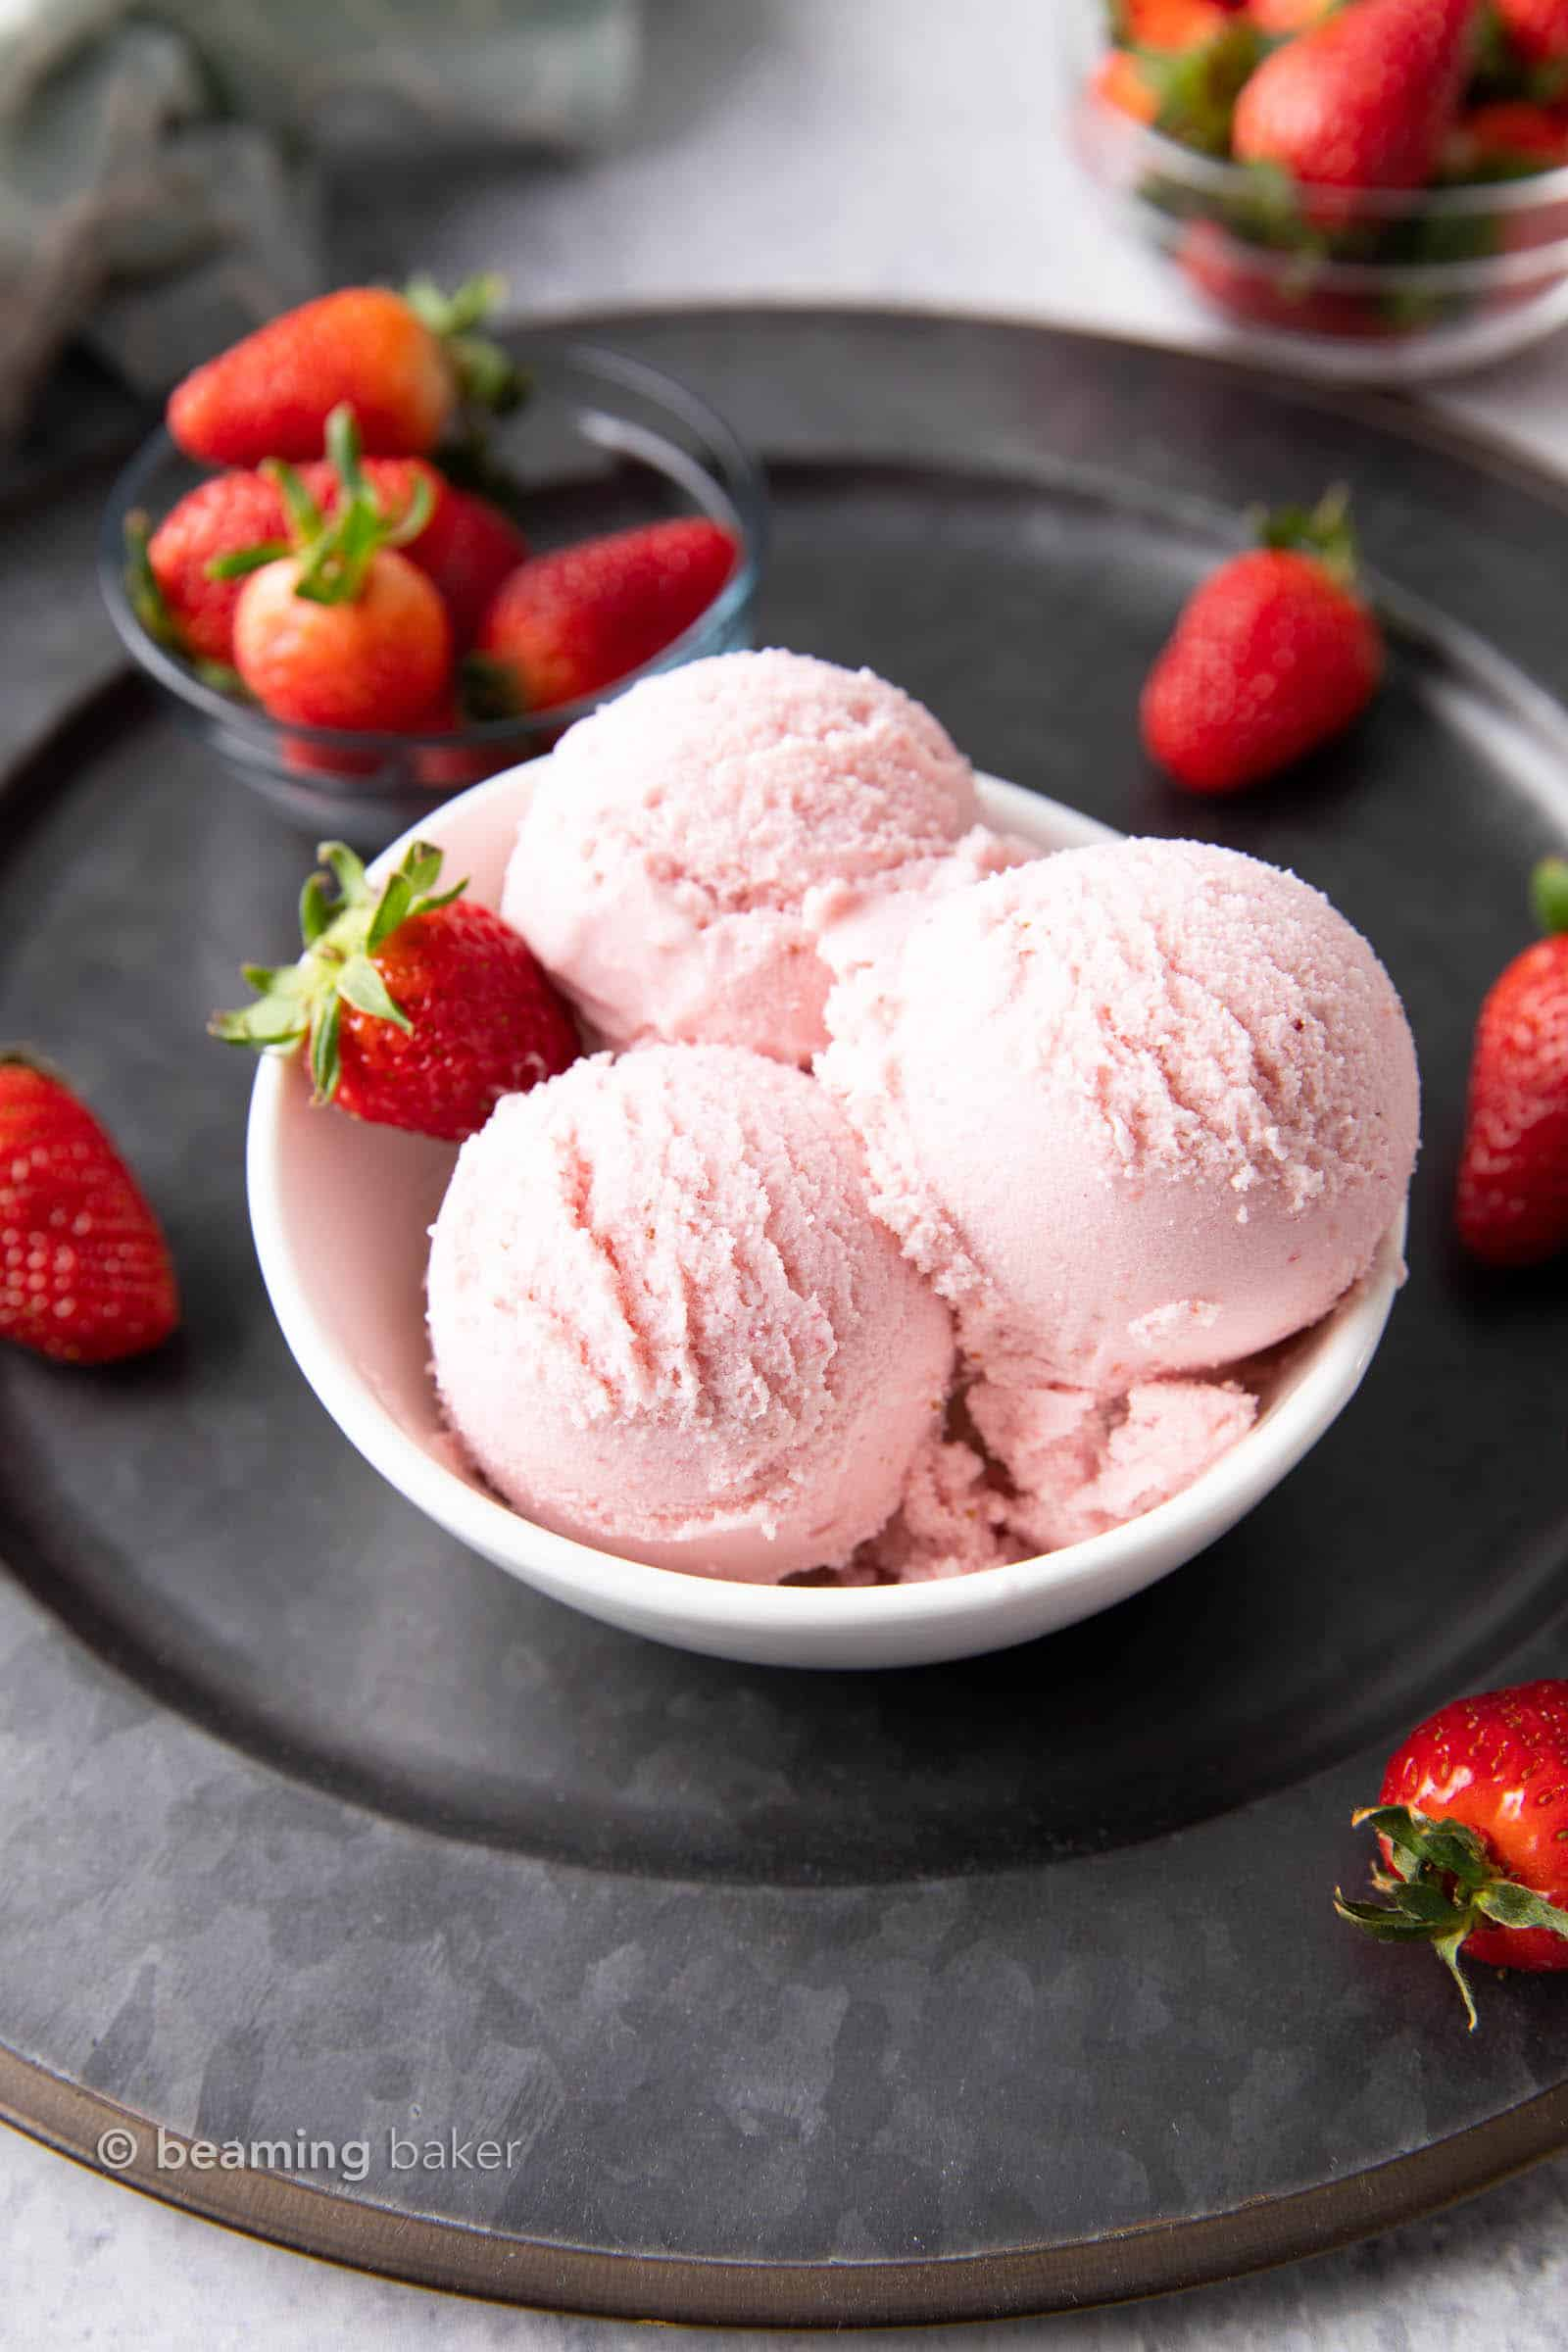 Homemade Vegan Ice Cream Recipe: learn 3 easy ways to make delicious vegan ice cream: Vanilla, Chocolate and Strawberry! Dairy-Free, Non-Dairy, Plant-Based. #VeganIceCream #Vegan #DairyFree #NonDairy | Recipe at BeamingBaker.com